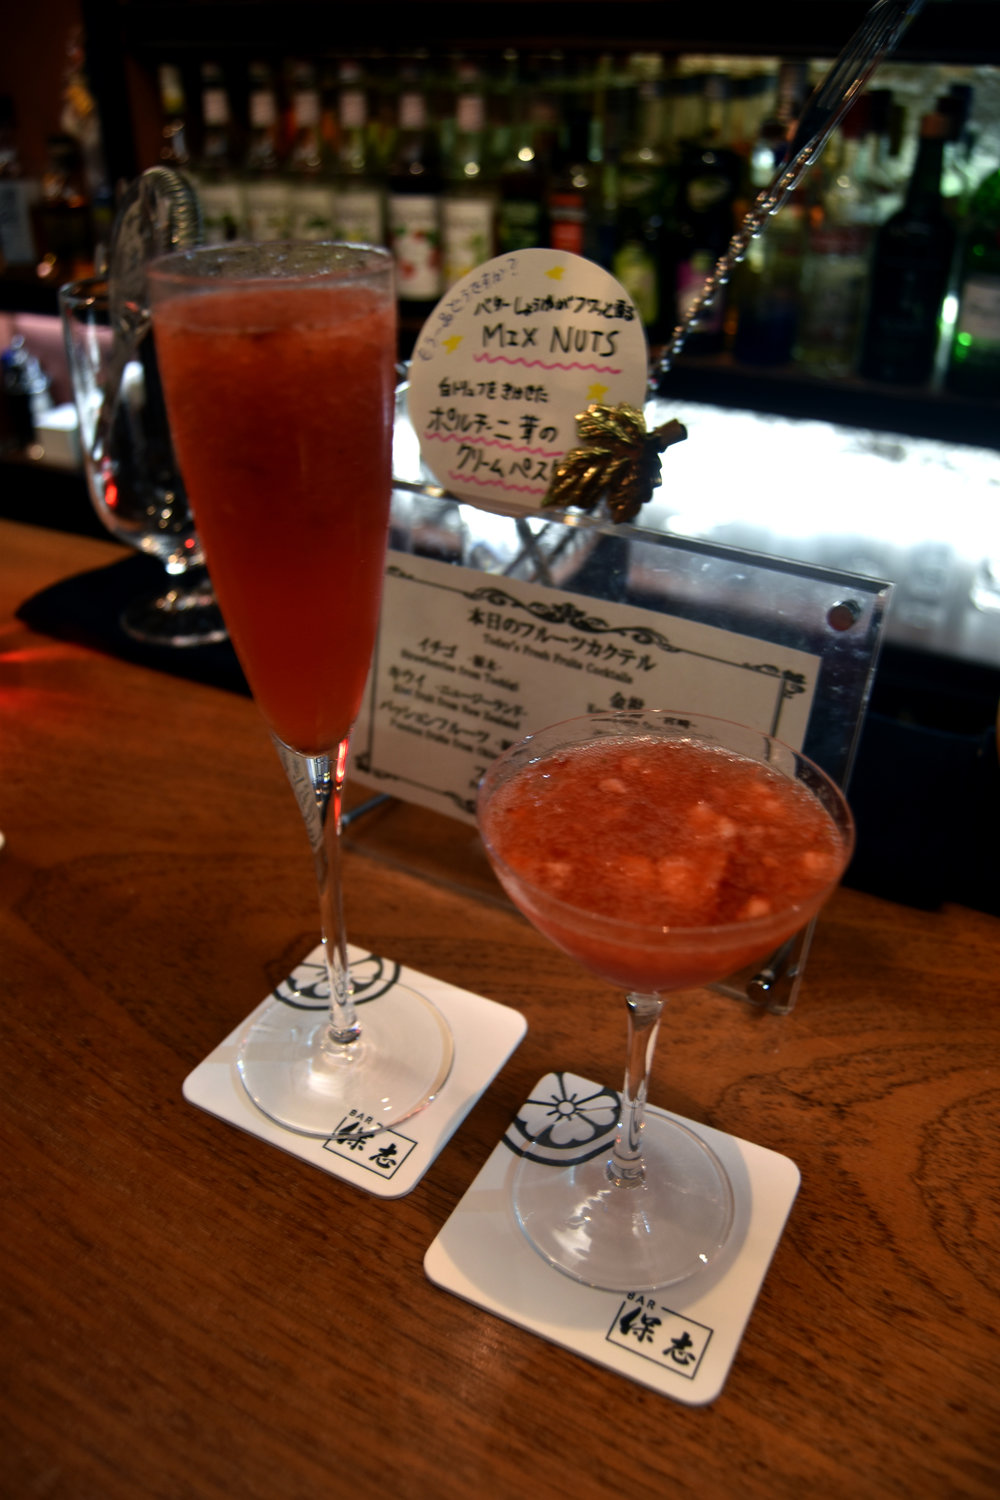 Fresh fruit cocktail featuring strawberries from Tochigo